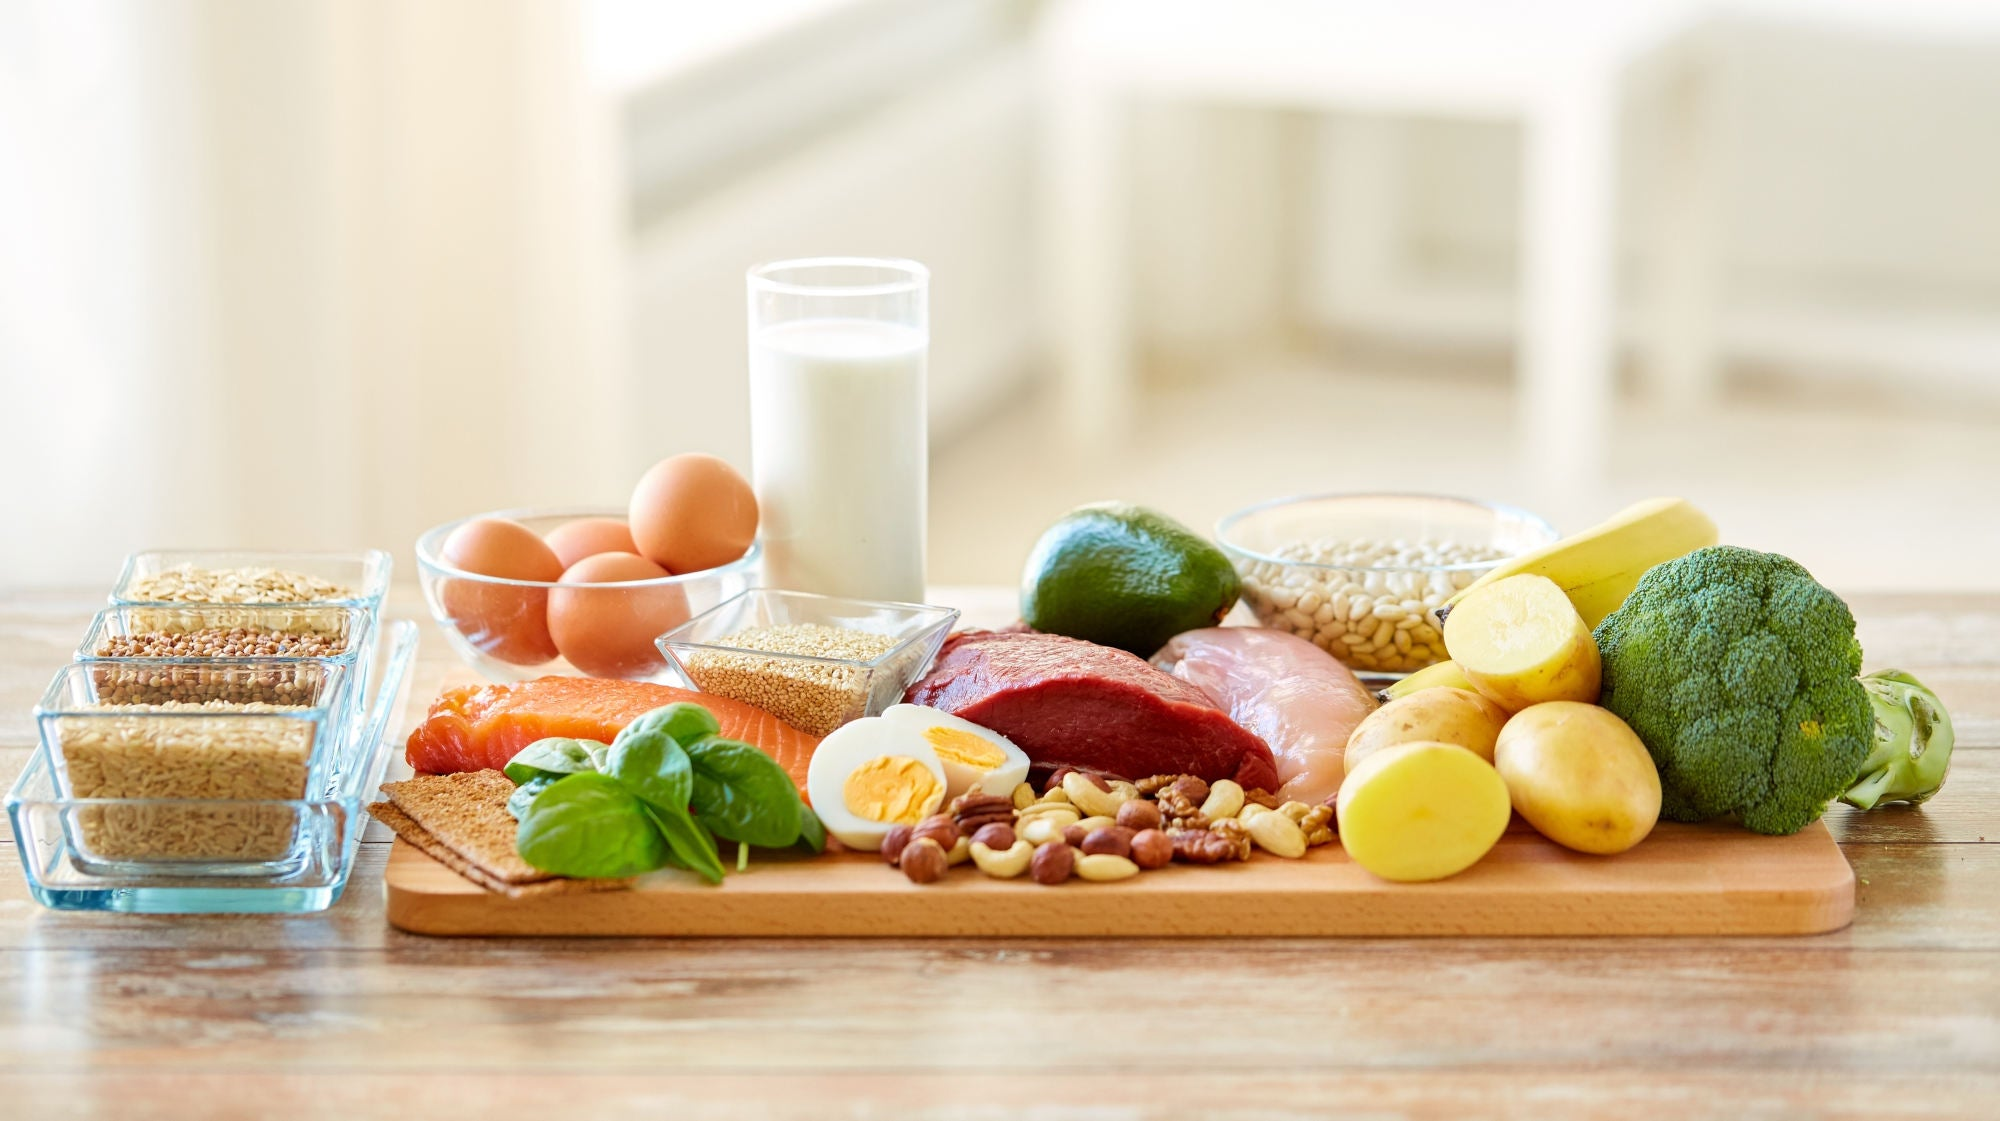 healthy eating and diet concept - natural food on table